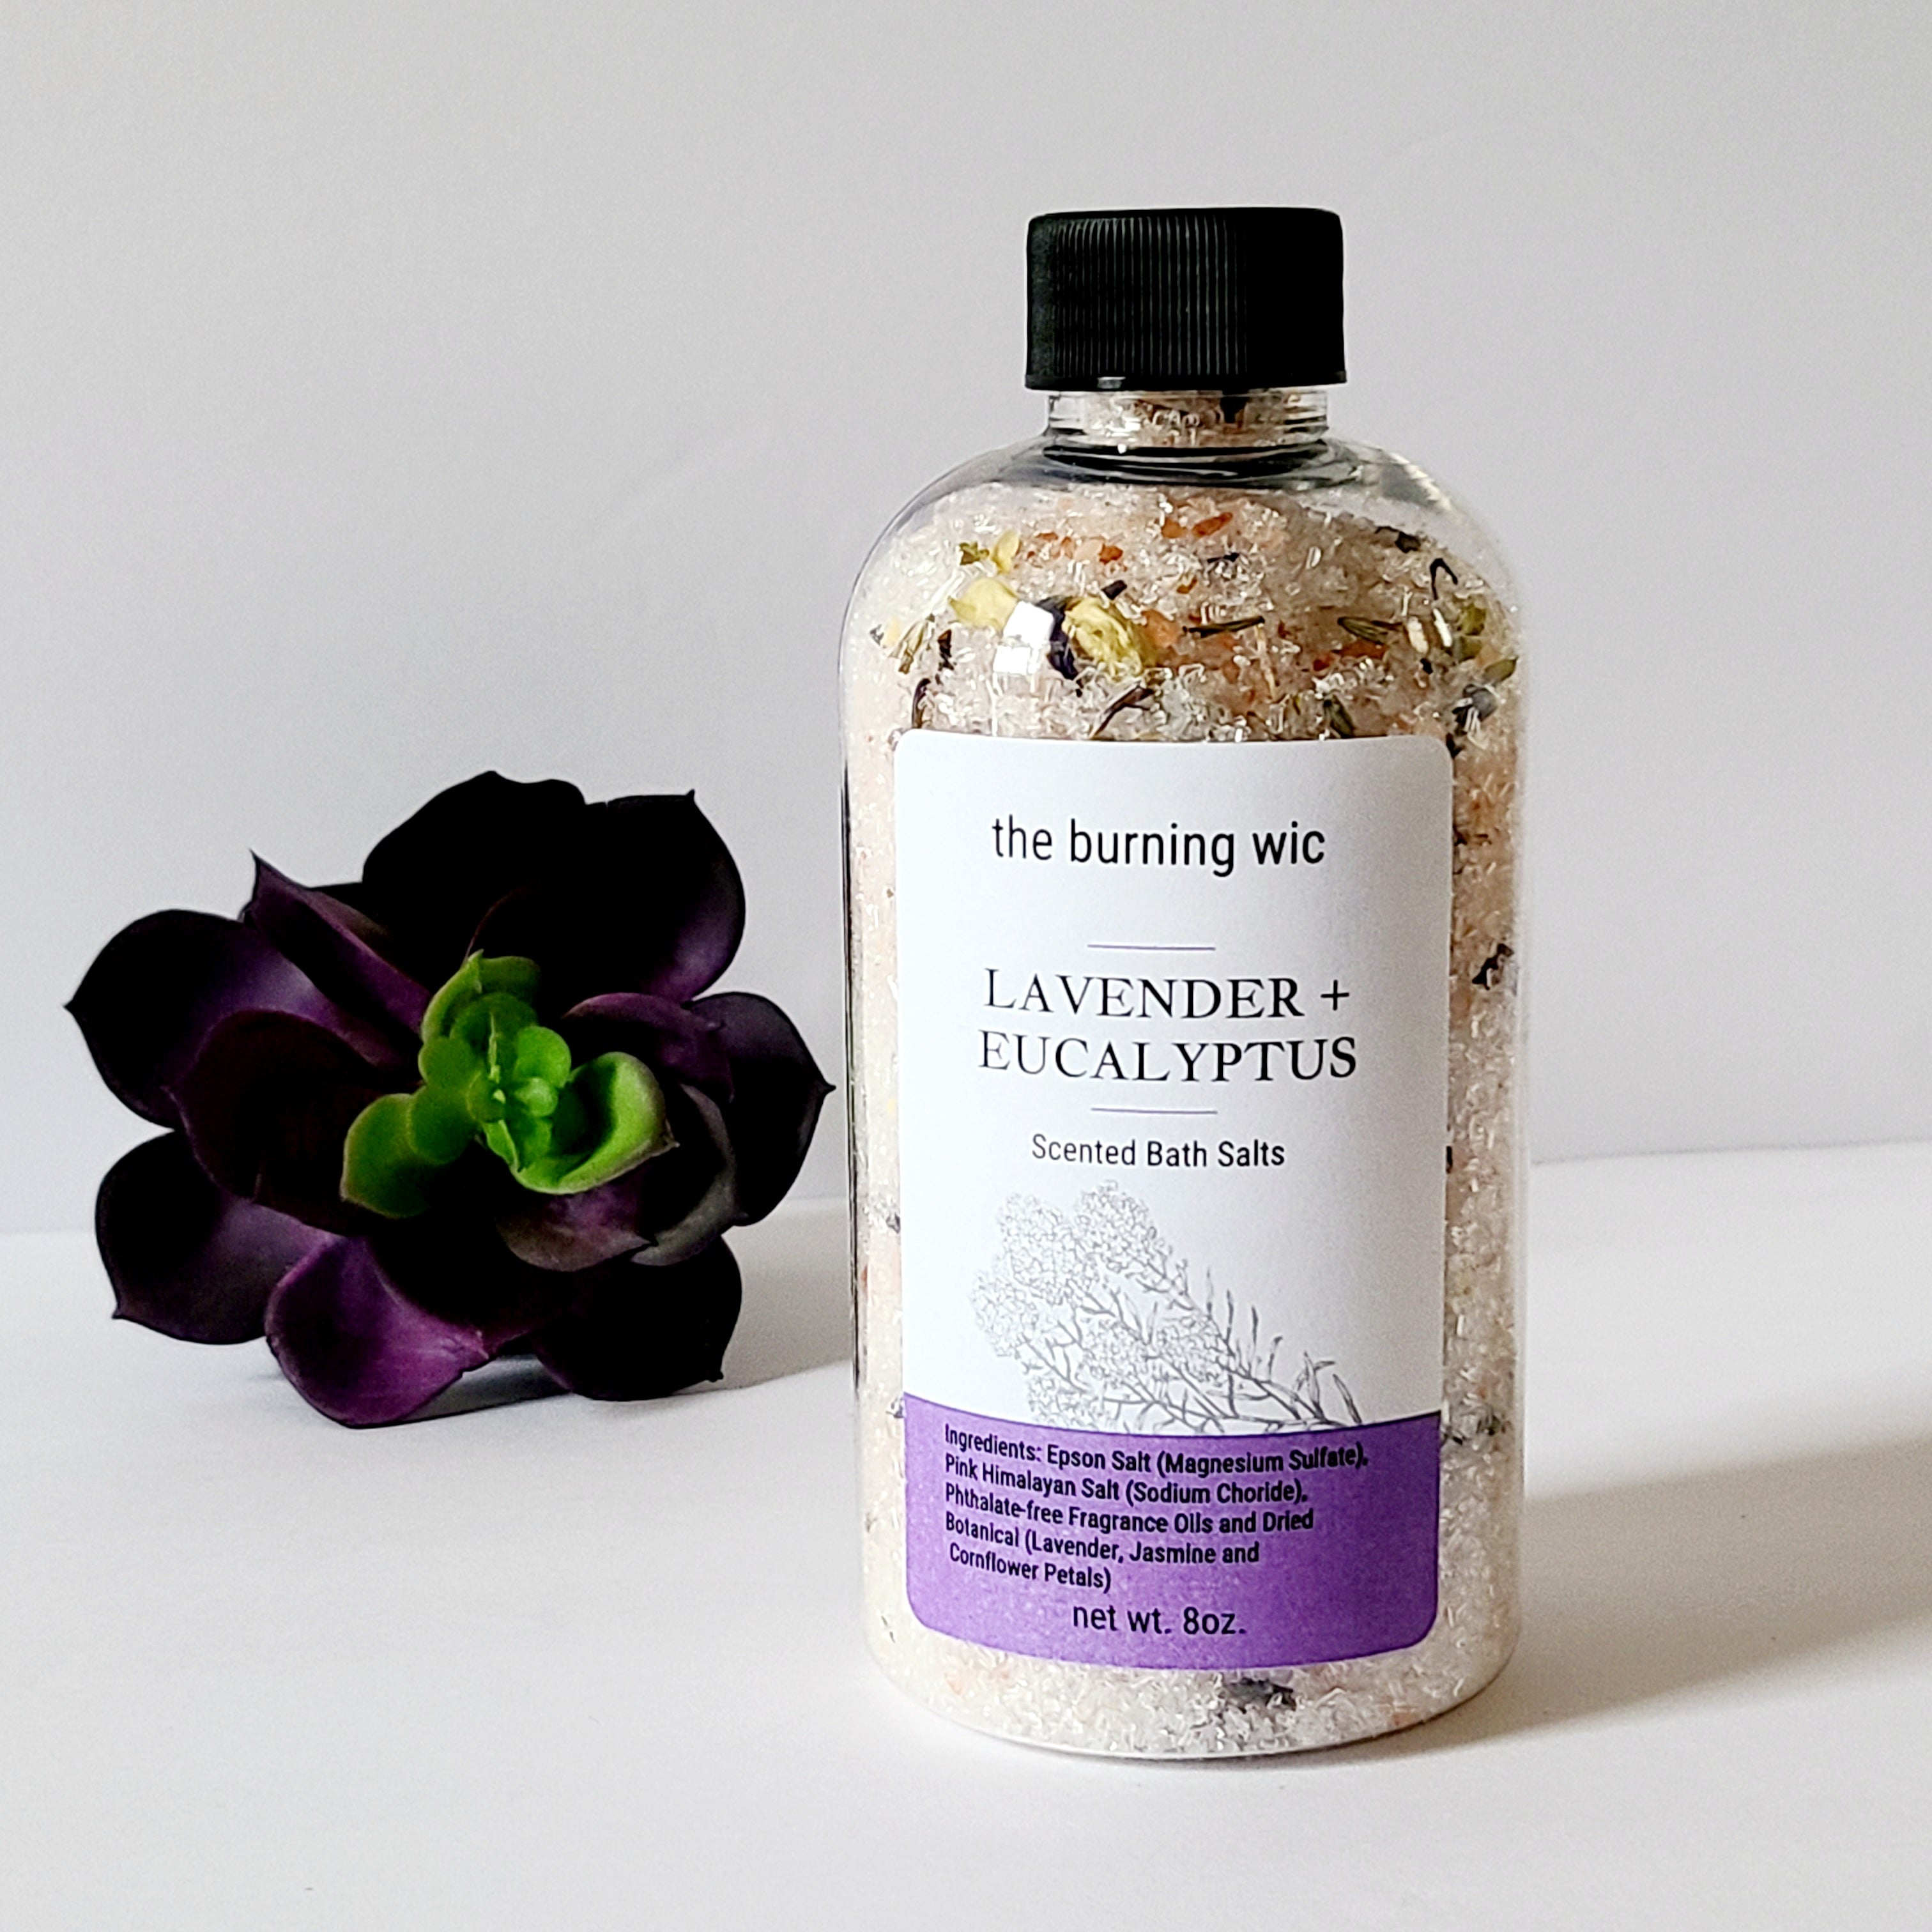 Lavender and Eucalyptus Bath Soaks